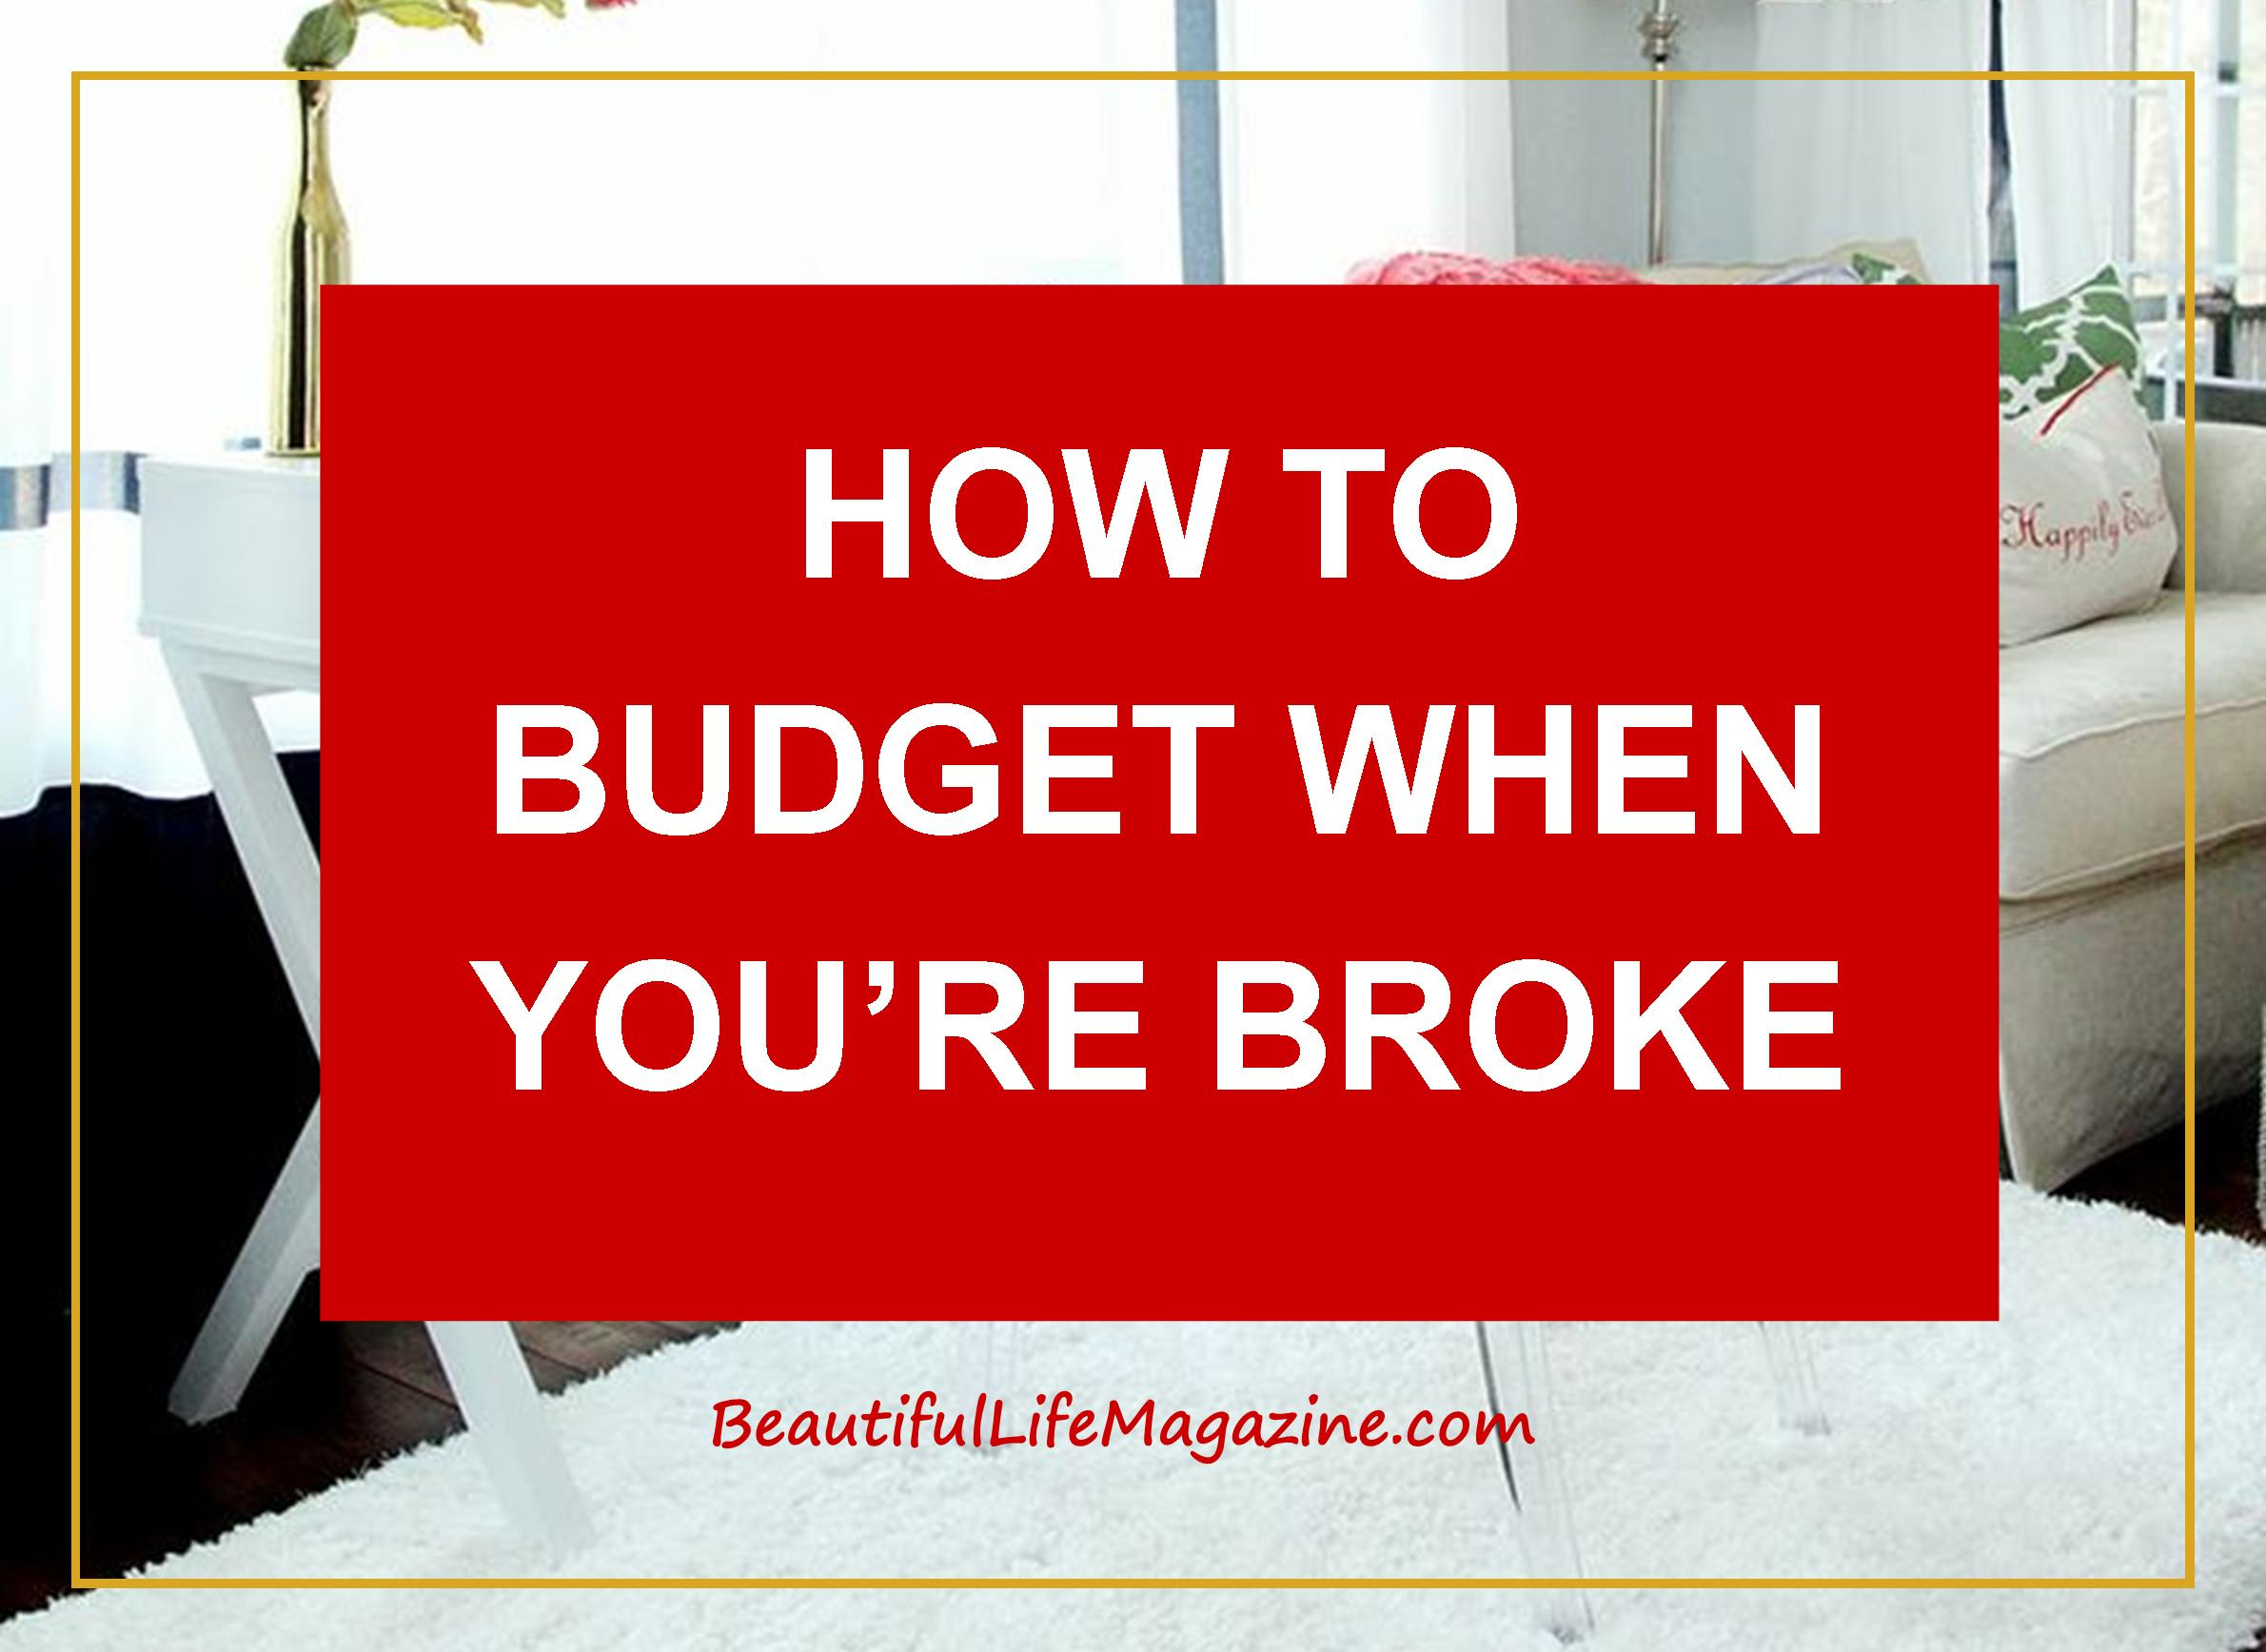 In fact, getting your budget off the ground is one of the hardest parts of fixing your finances when you're broke. Start now, to set yourself up for success